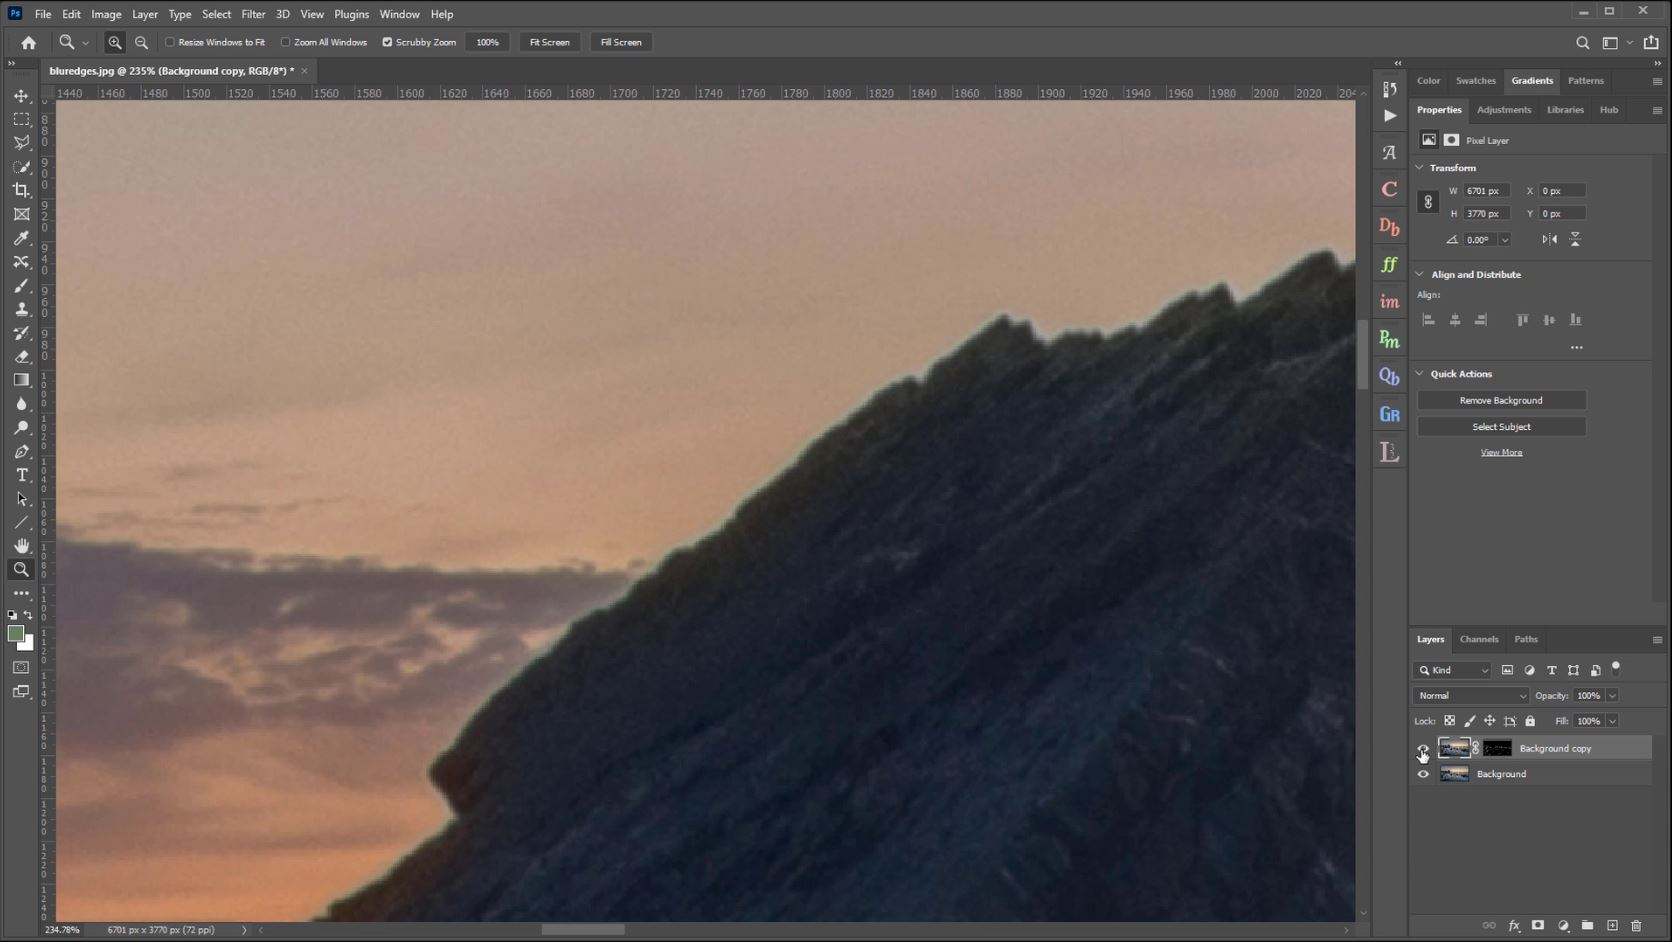 How to Blur Edges in Photoshop